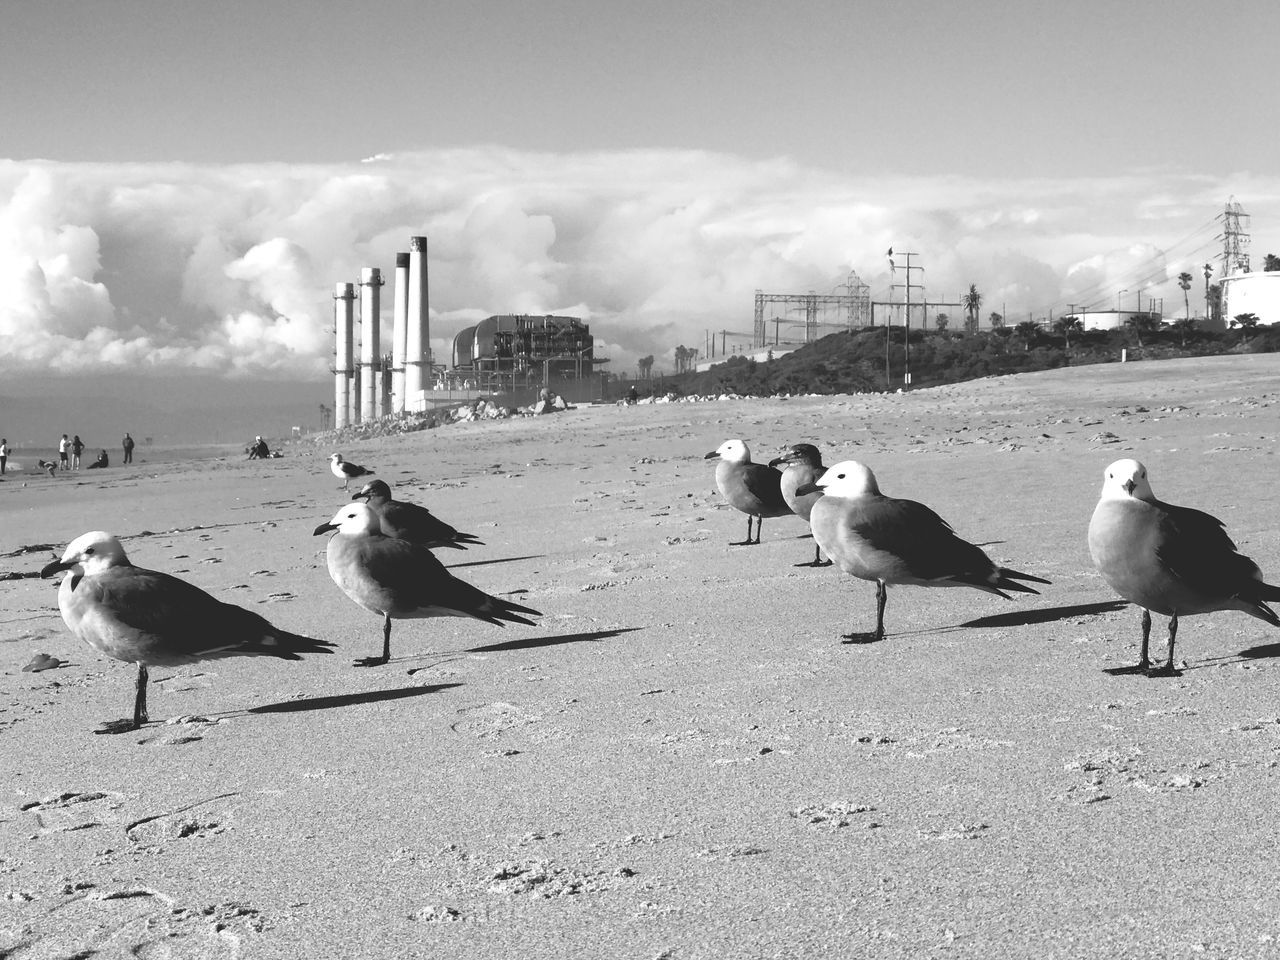 animal themes, bird, animals in the wild, sand, animal wildlife, day, outdoors, nature, no people, sky, beach, seagull, large group of animals, water